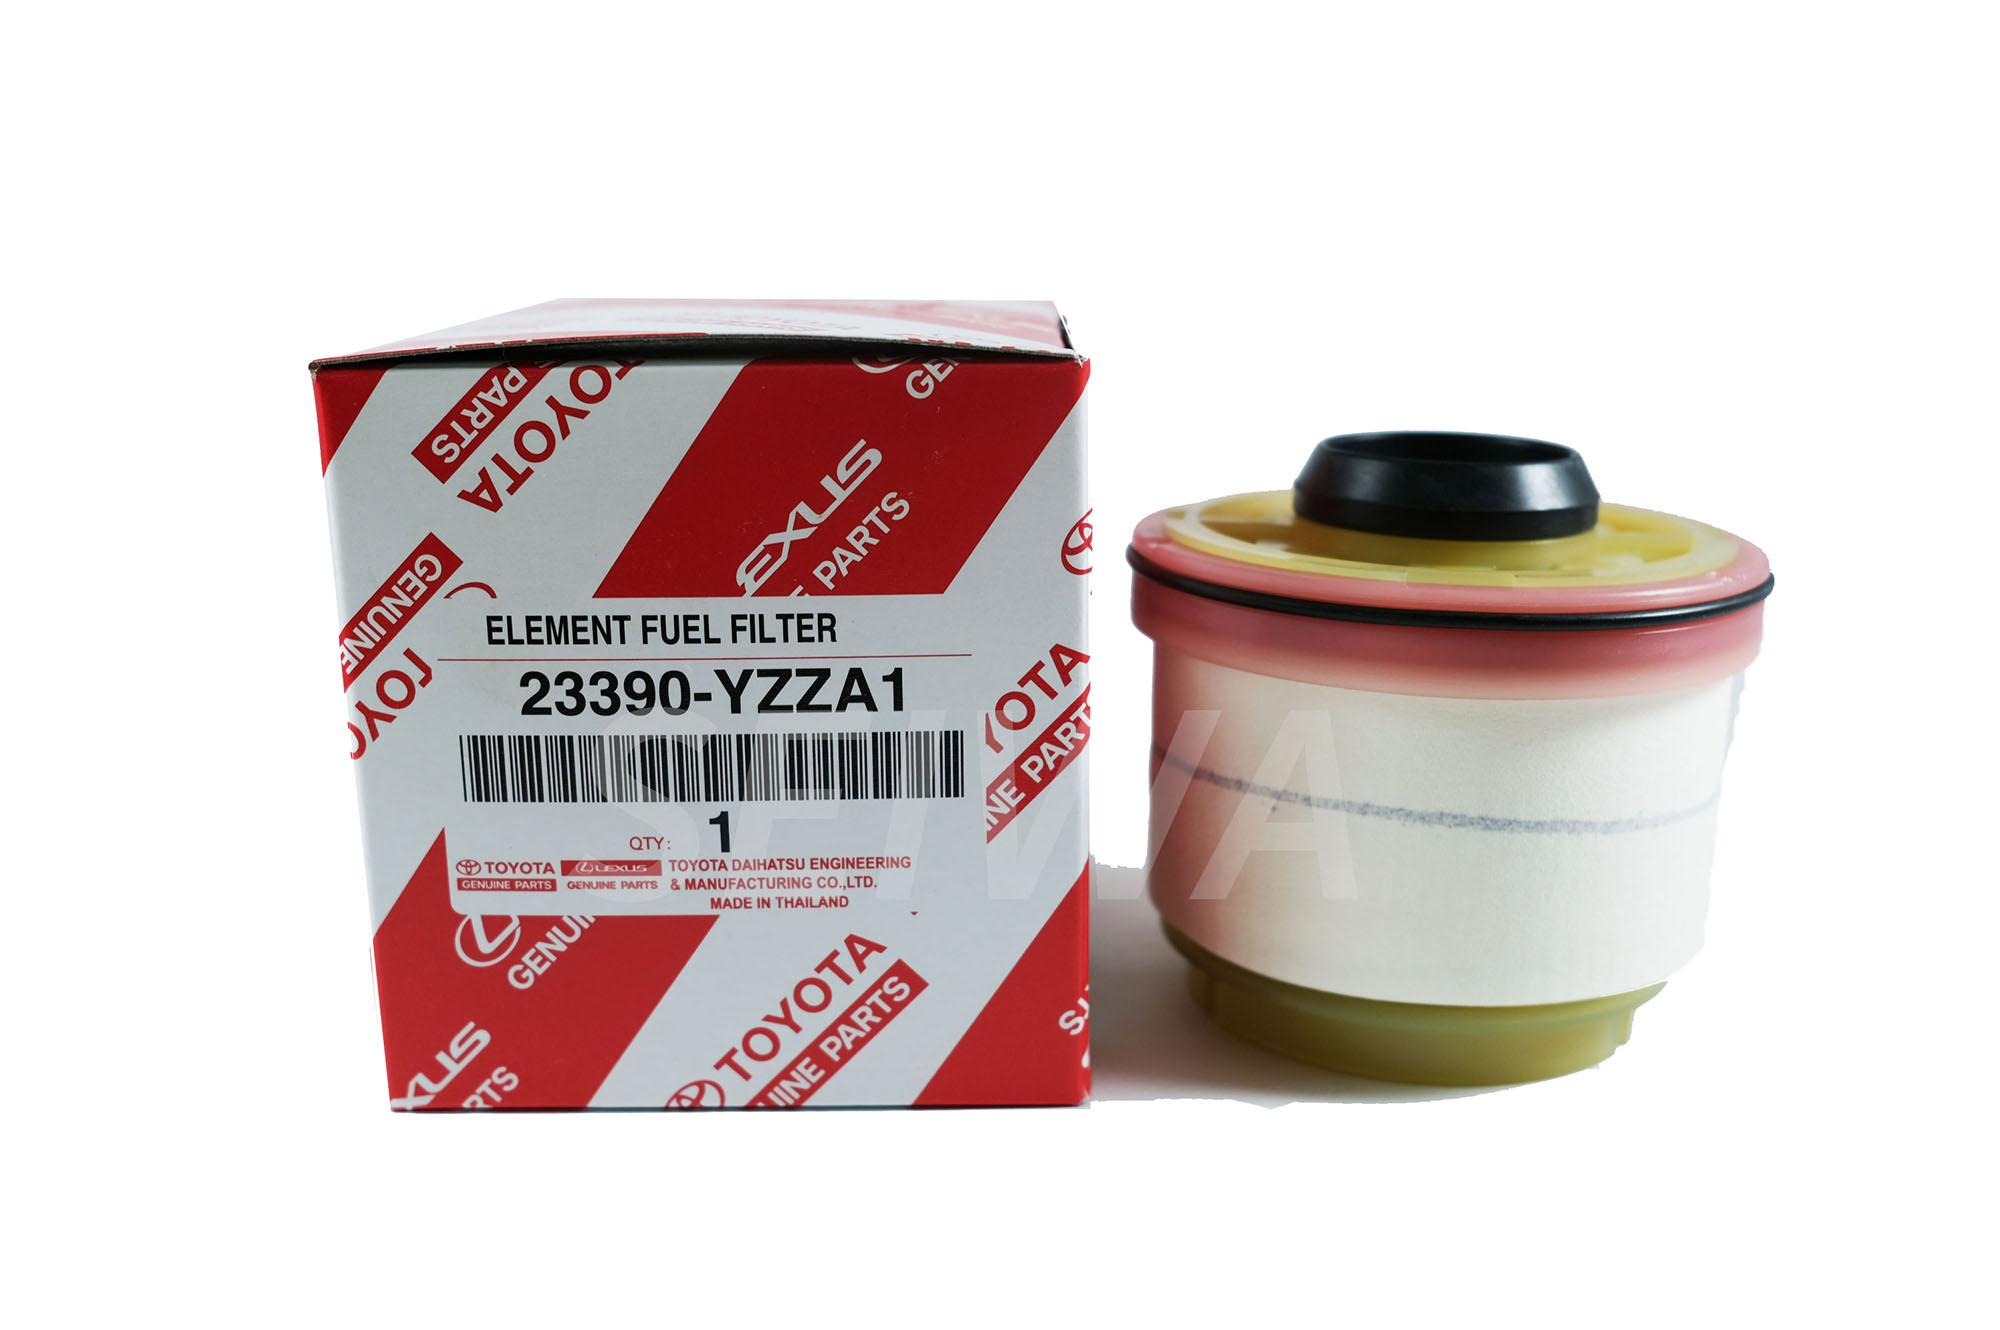 Fuel Filter For Sale Gas Online Brands Prices Reviews In Isuzu Diesel Filters Genuine Toyota Auto Parts 23390 Yzza1 Innova